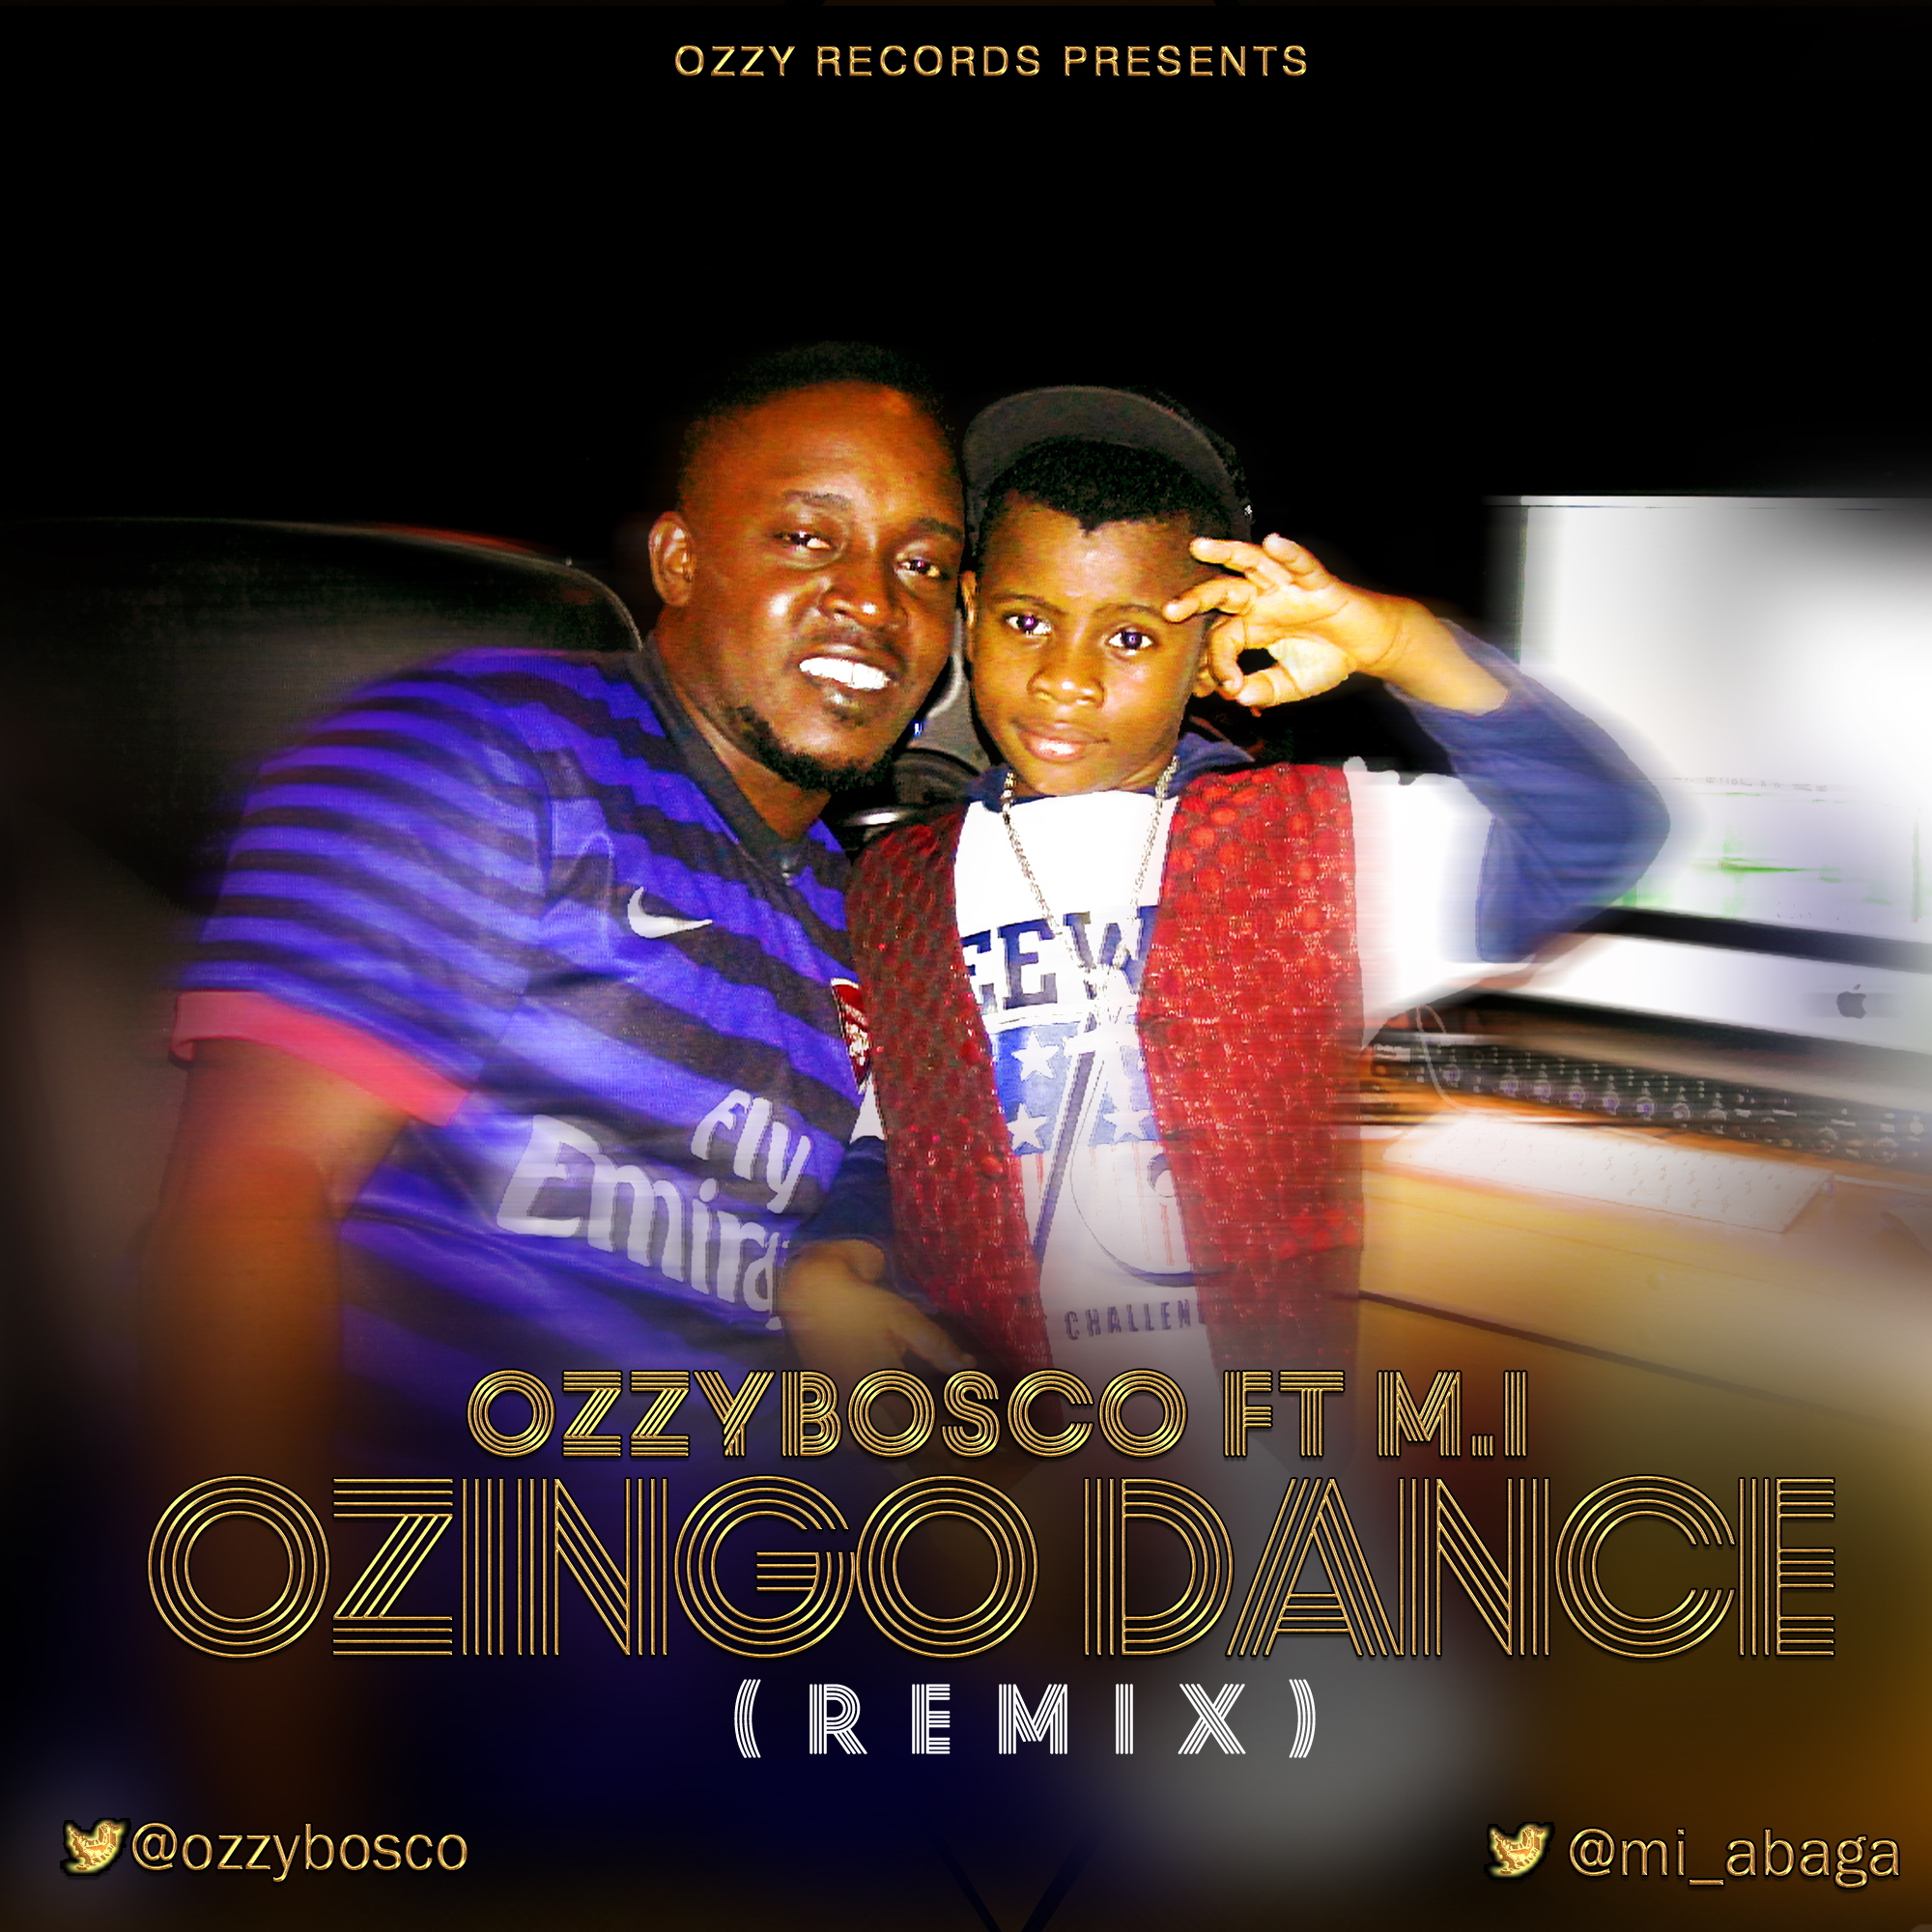 ozzybosco - ozingo dance remix ft mi 2